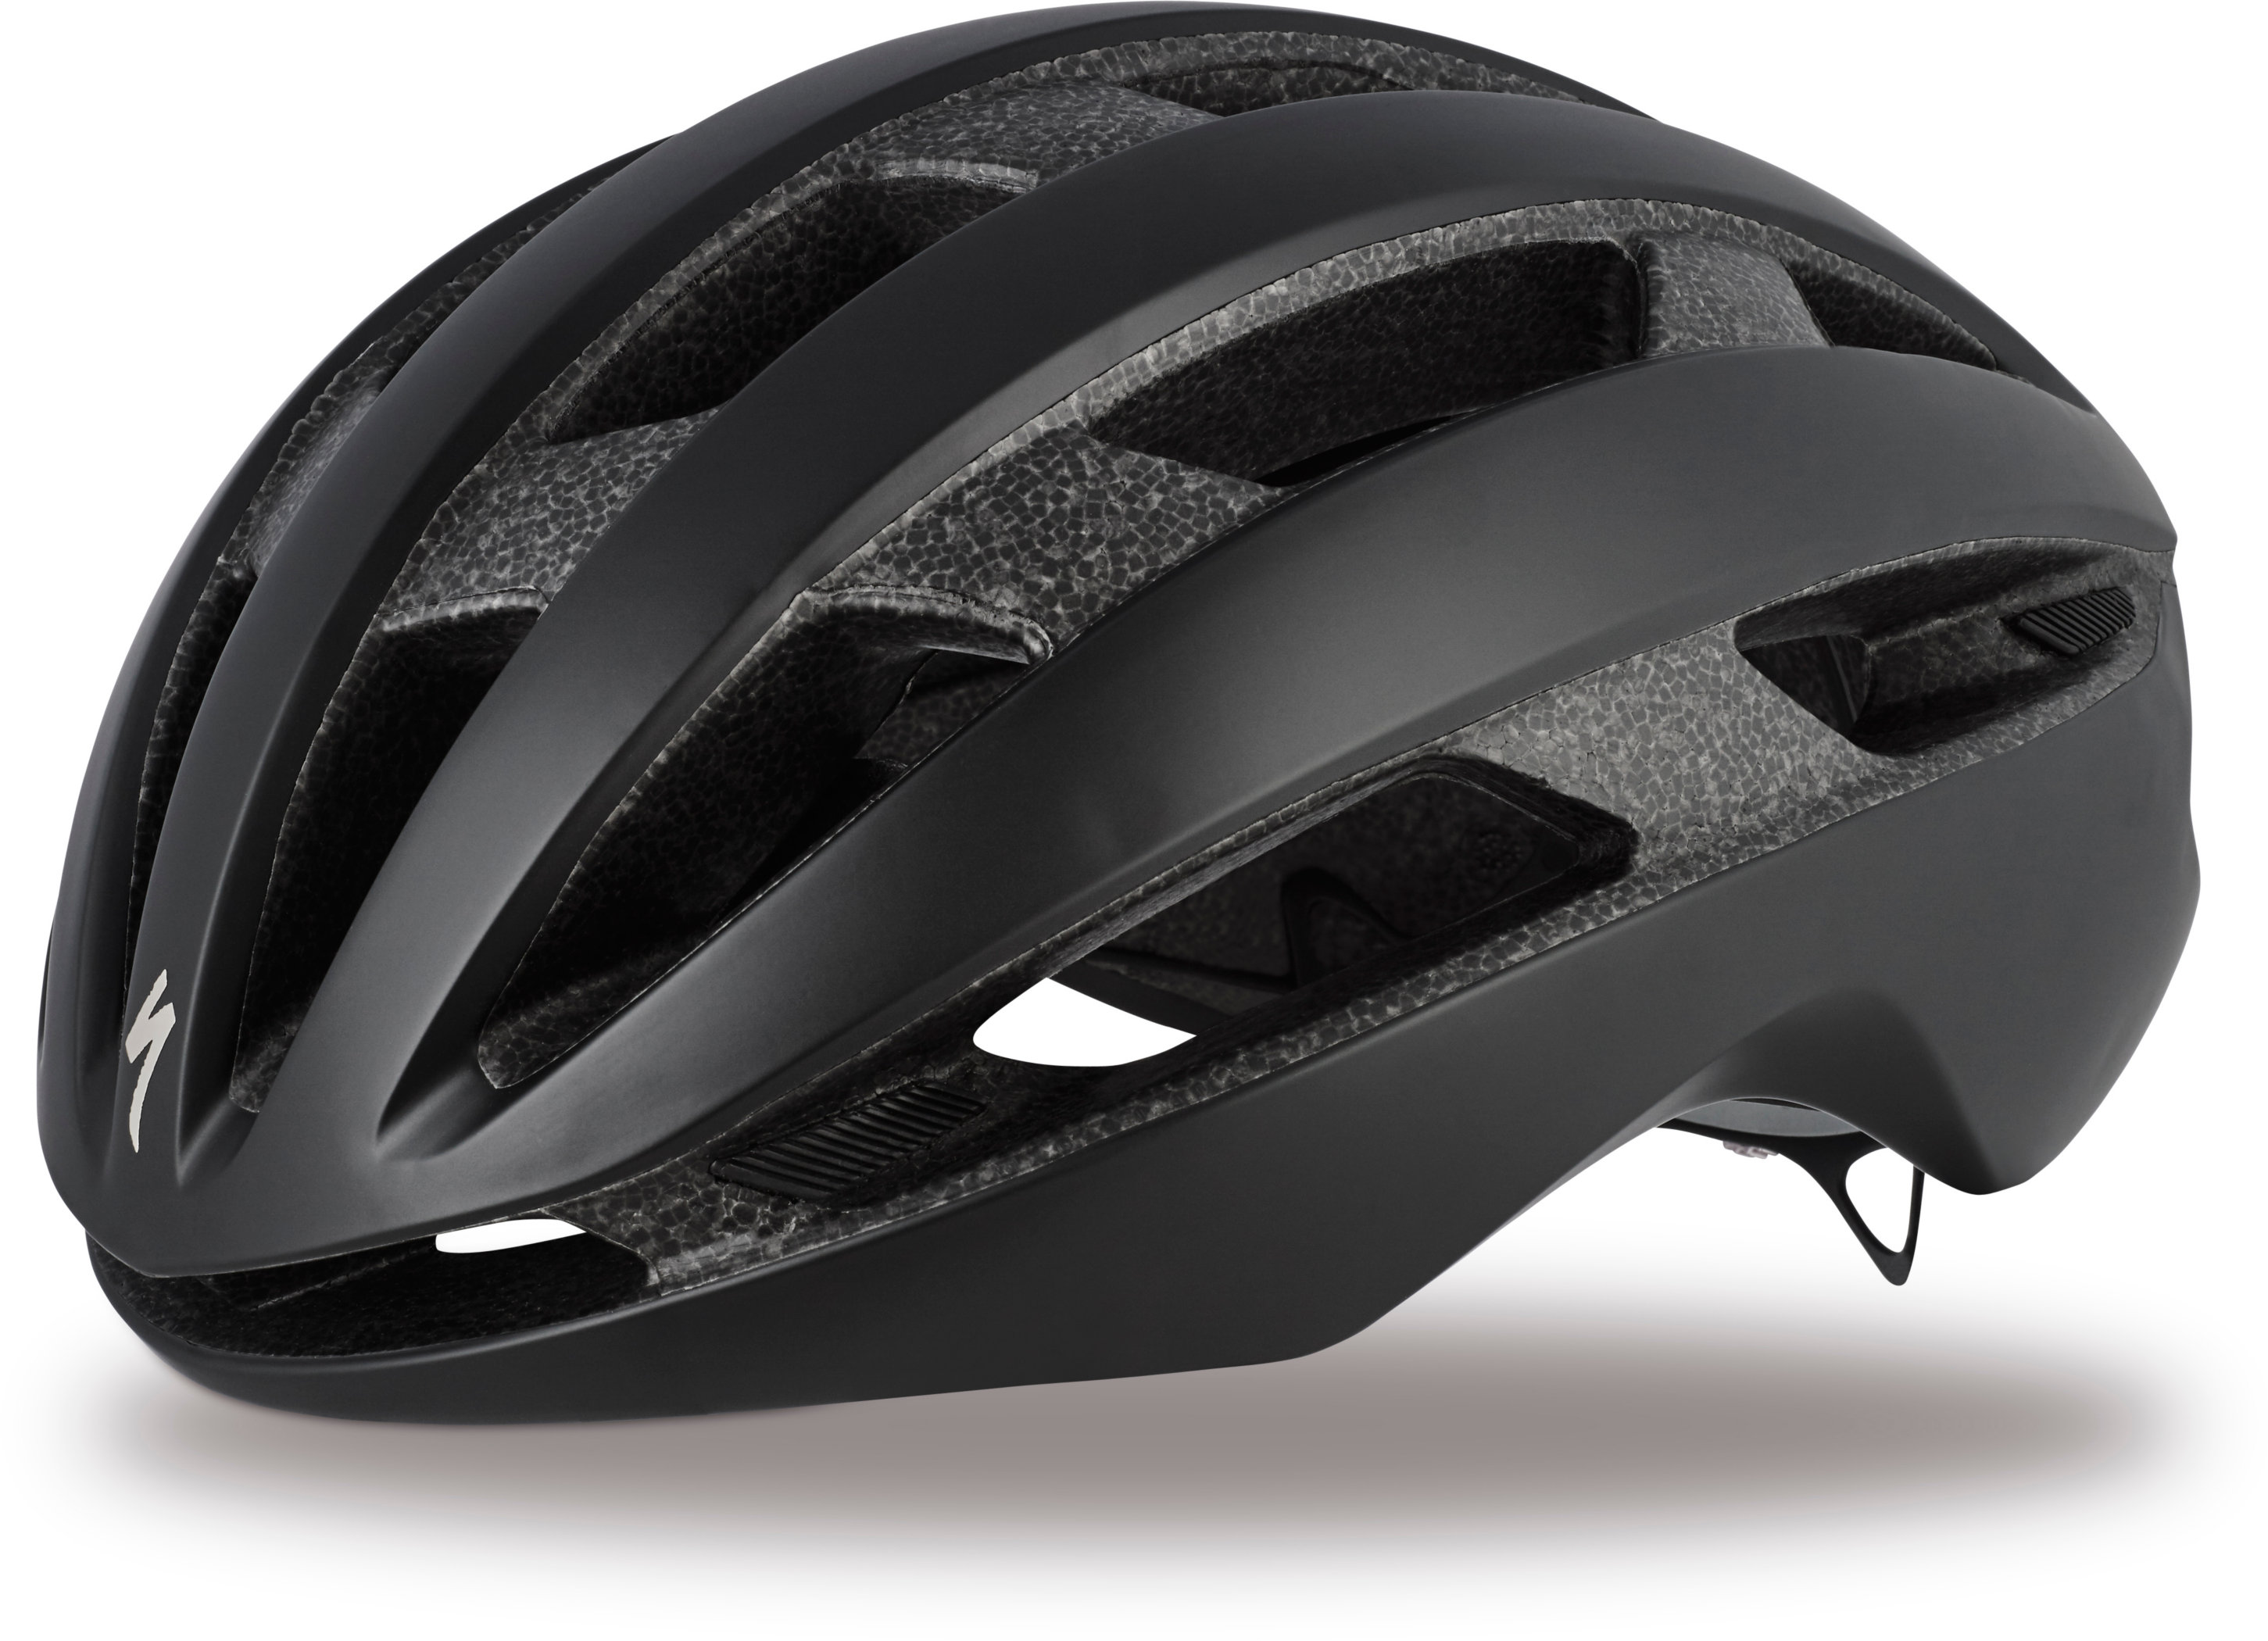 SPECIALIZED AIRNET HLMT CE BLK M - Bike Zone